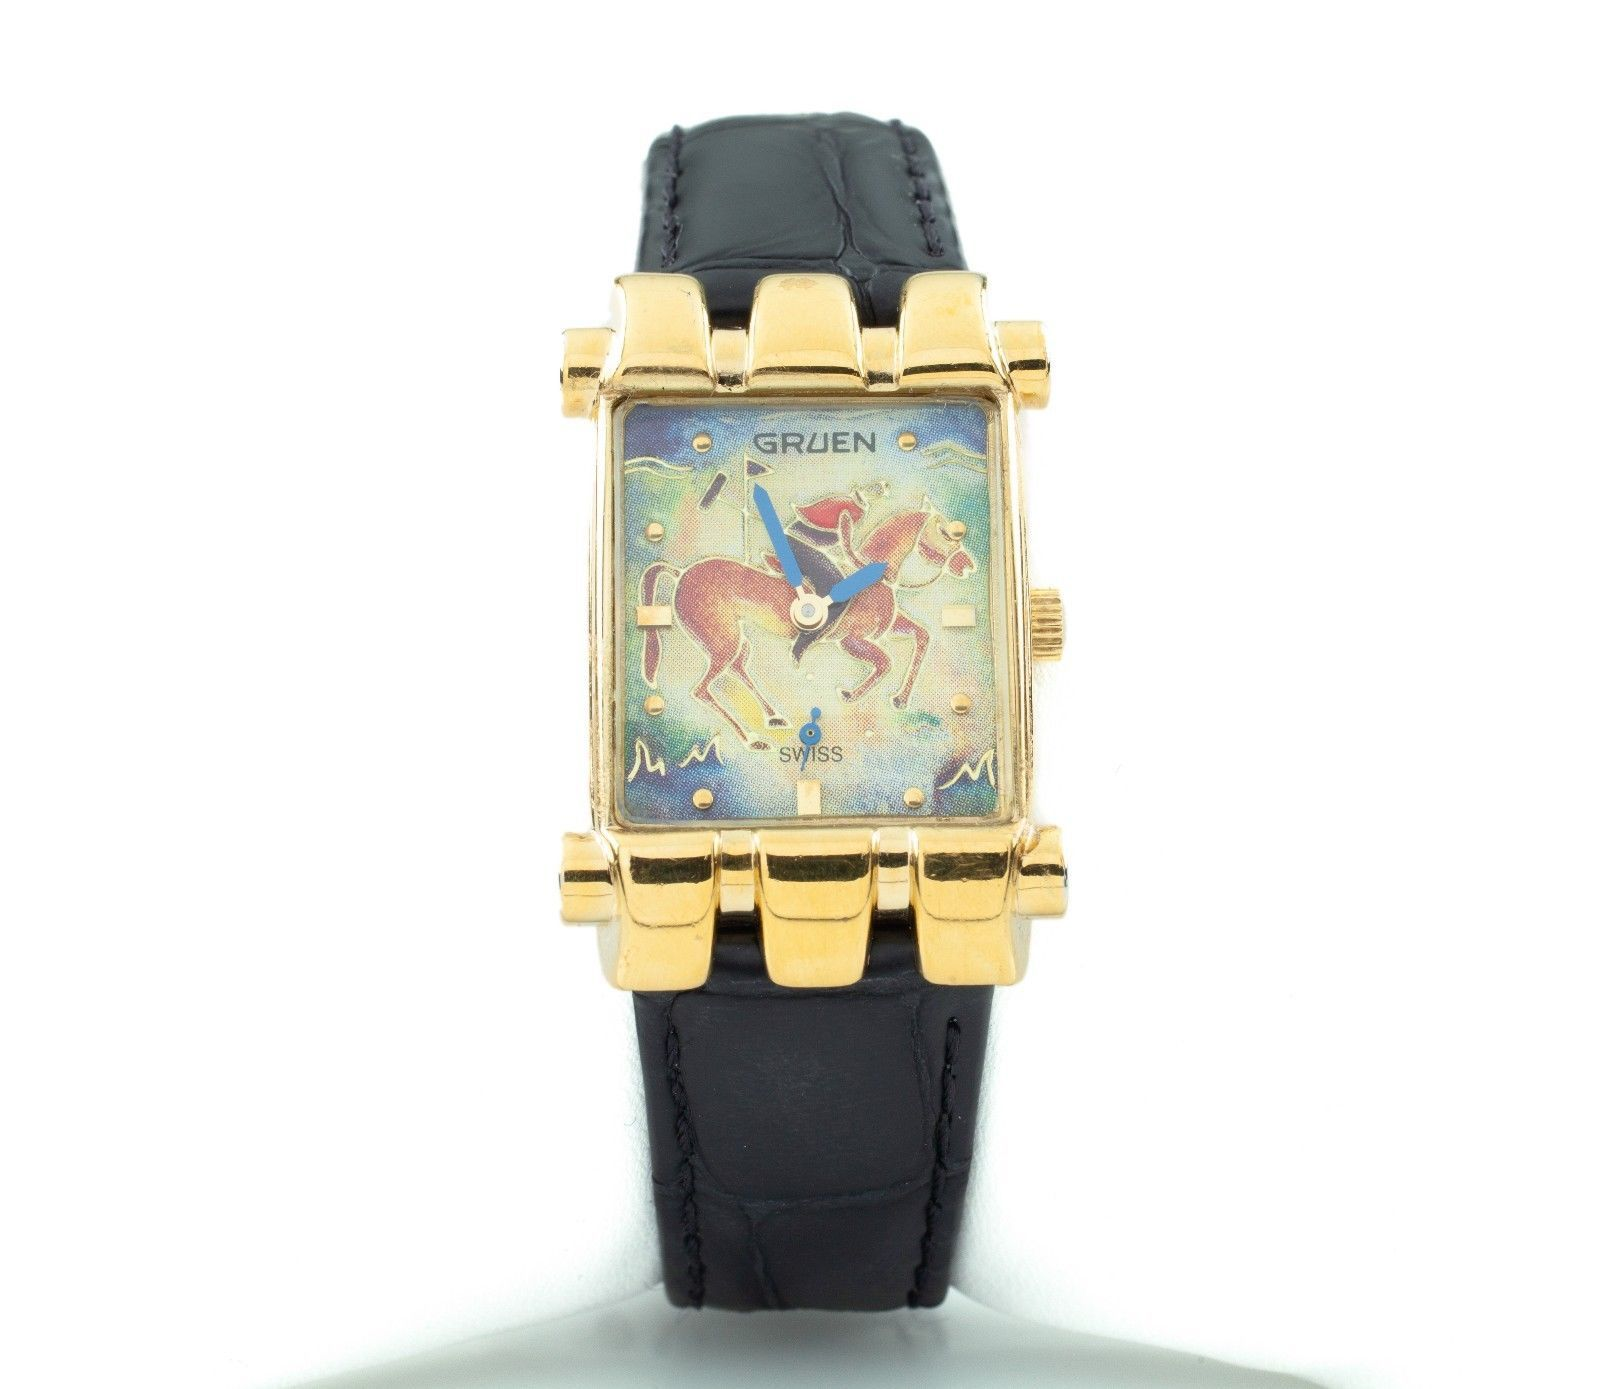 """Gruen Gold-Plated Quartz Watch w/ Leather Band """"The Polo Player"""" Nice! - $594.00"""